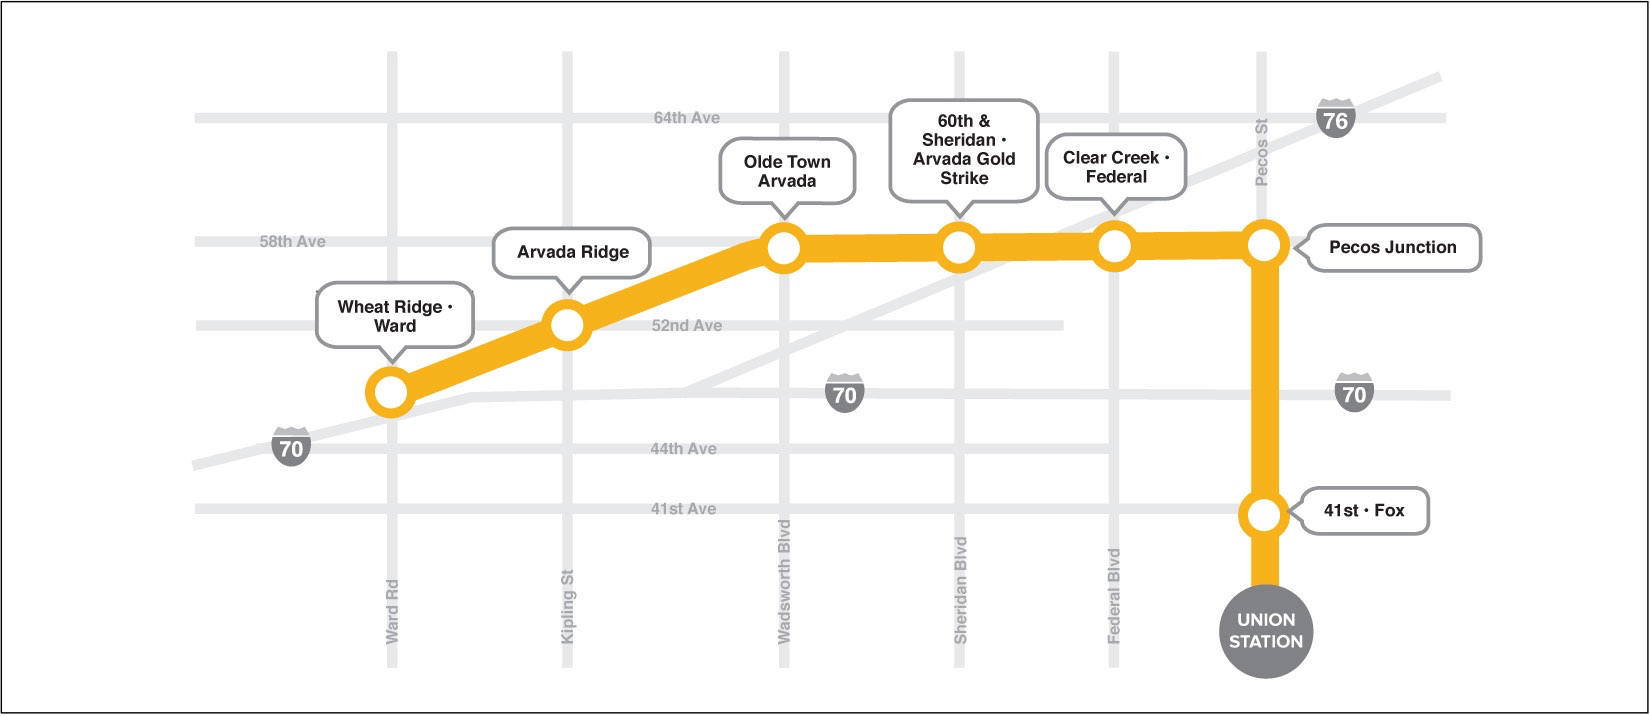 New York Subway Map G Line.The G Line From Denver To Arvada And Wheat Ridge Will Finally Open